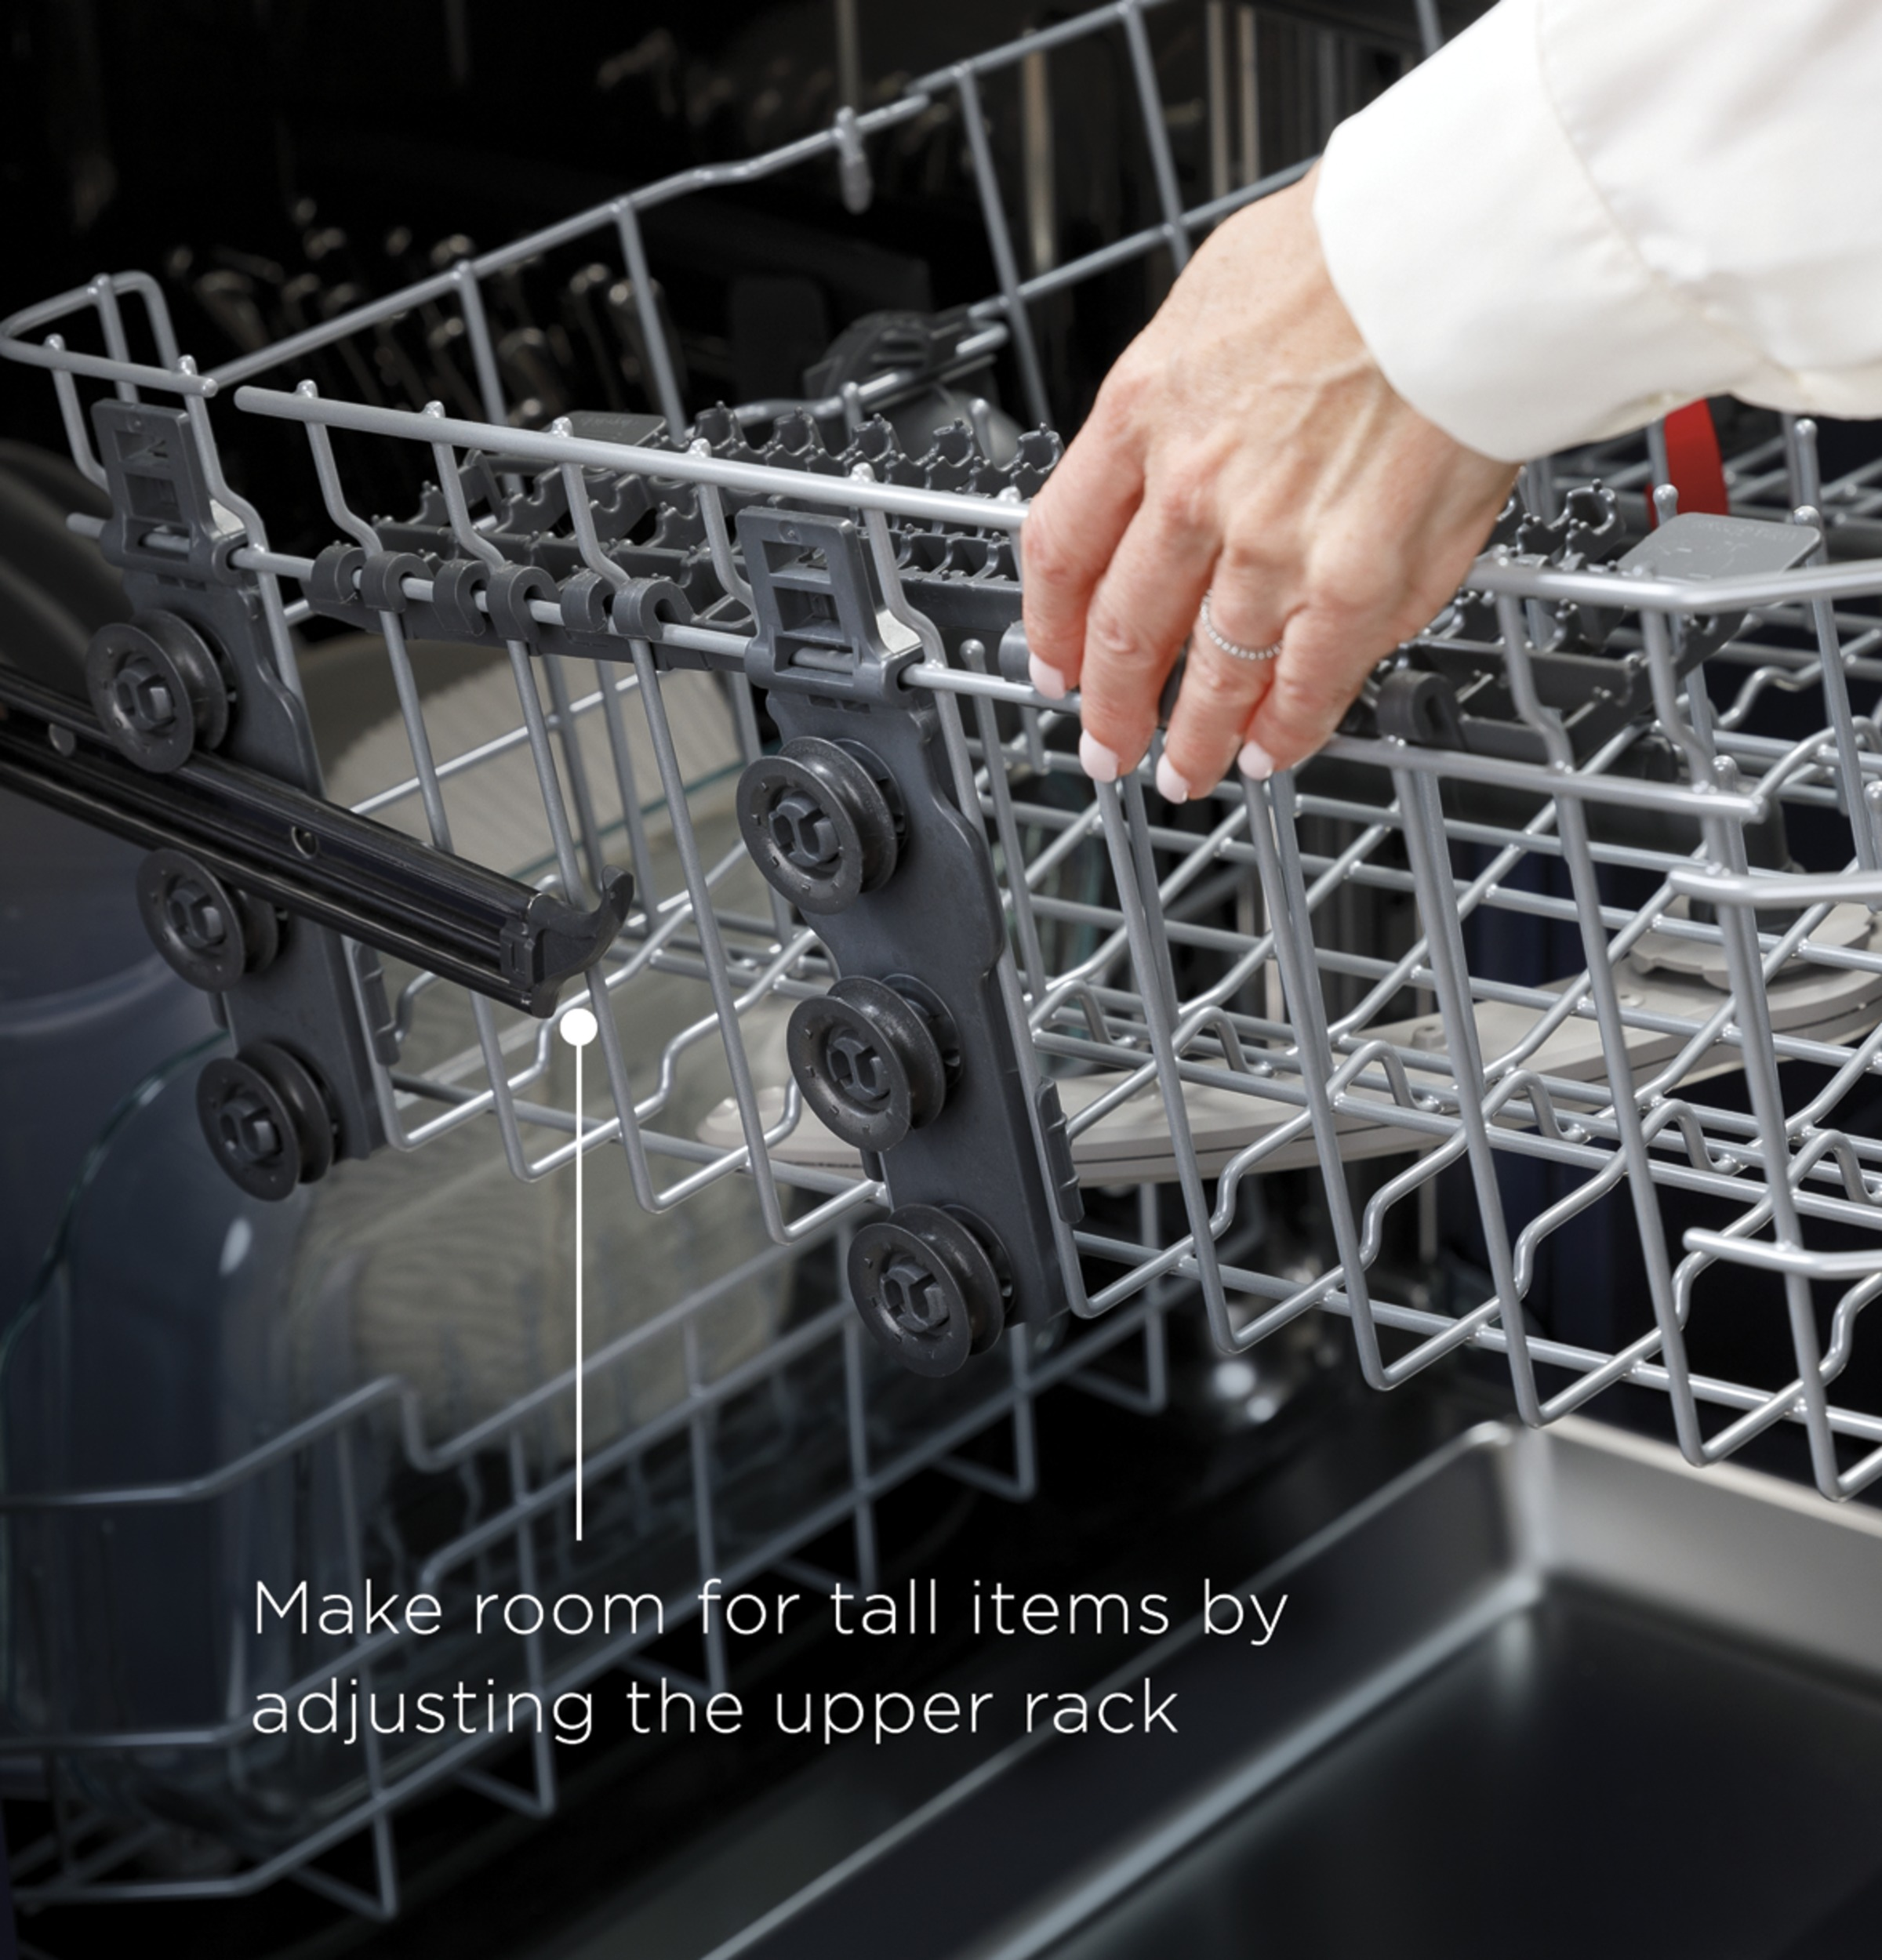 Model: GDF645SMNES   GE GE® Stainless Steel Interior Dishwasher with Front Controls